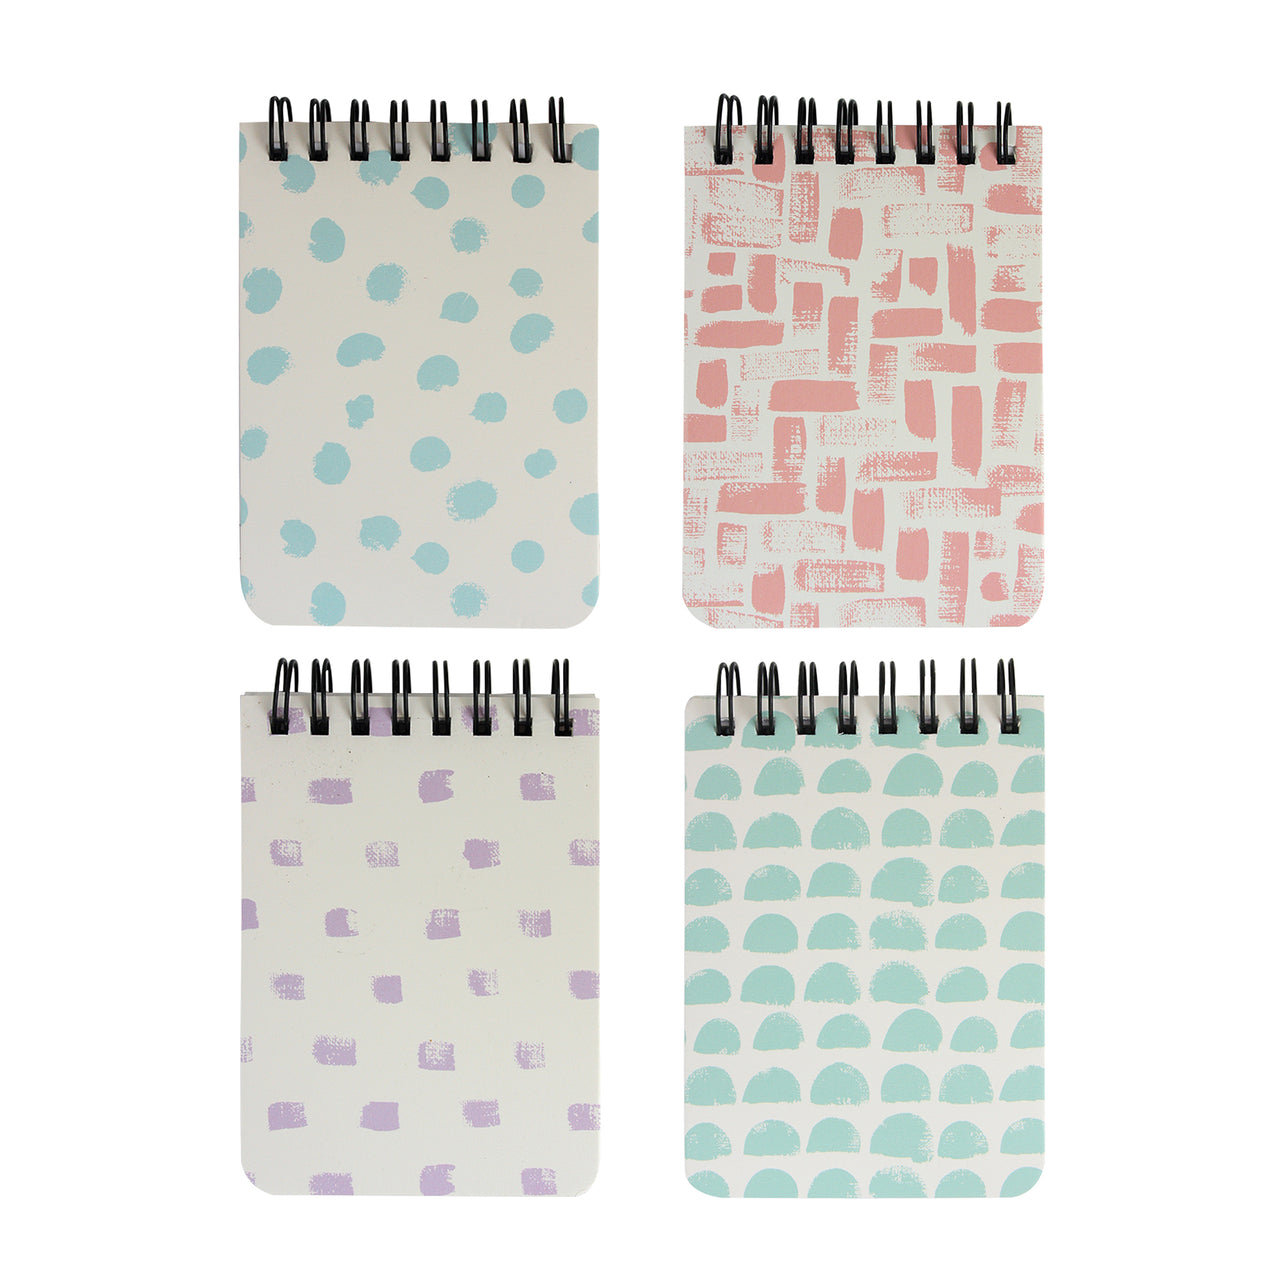 A7 Printed Notebook - Set of 4